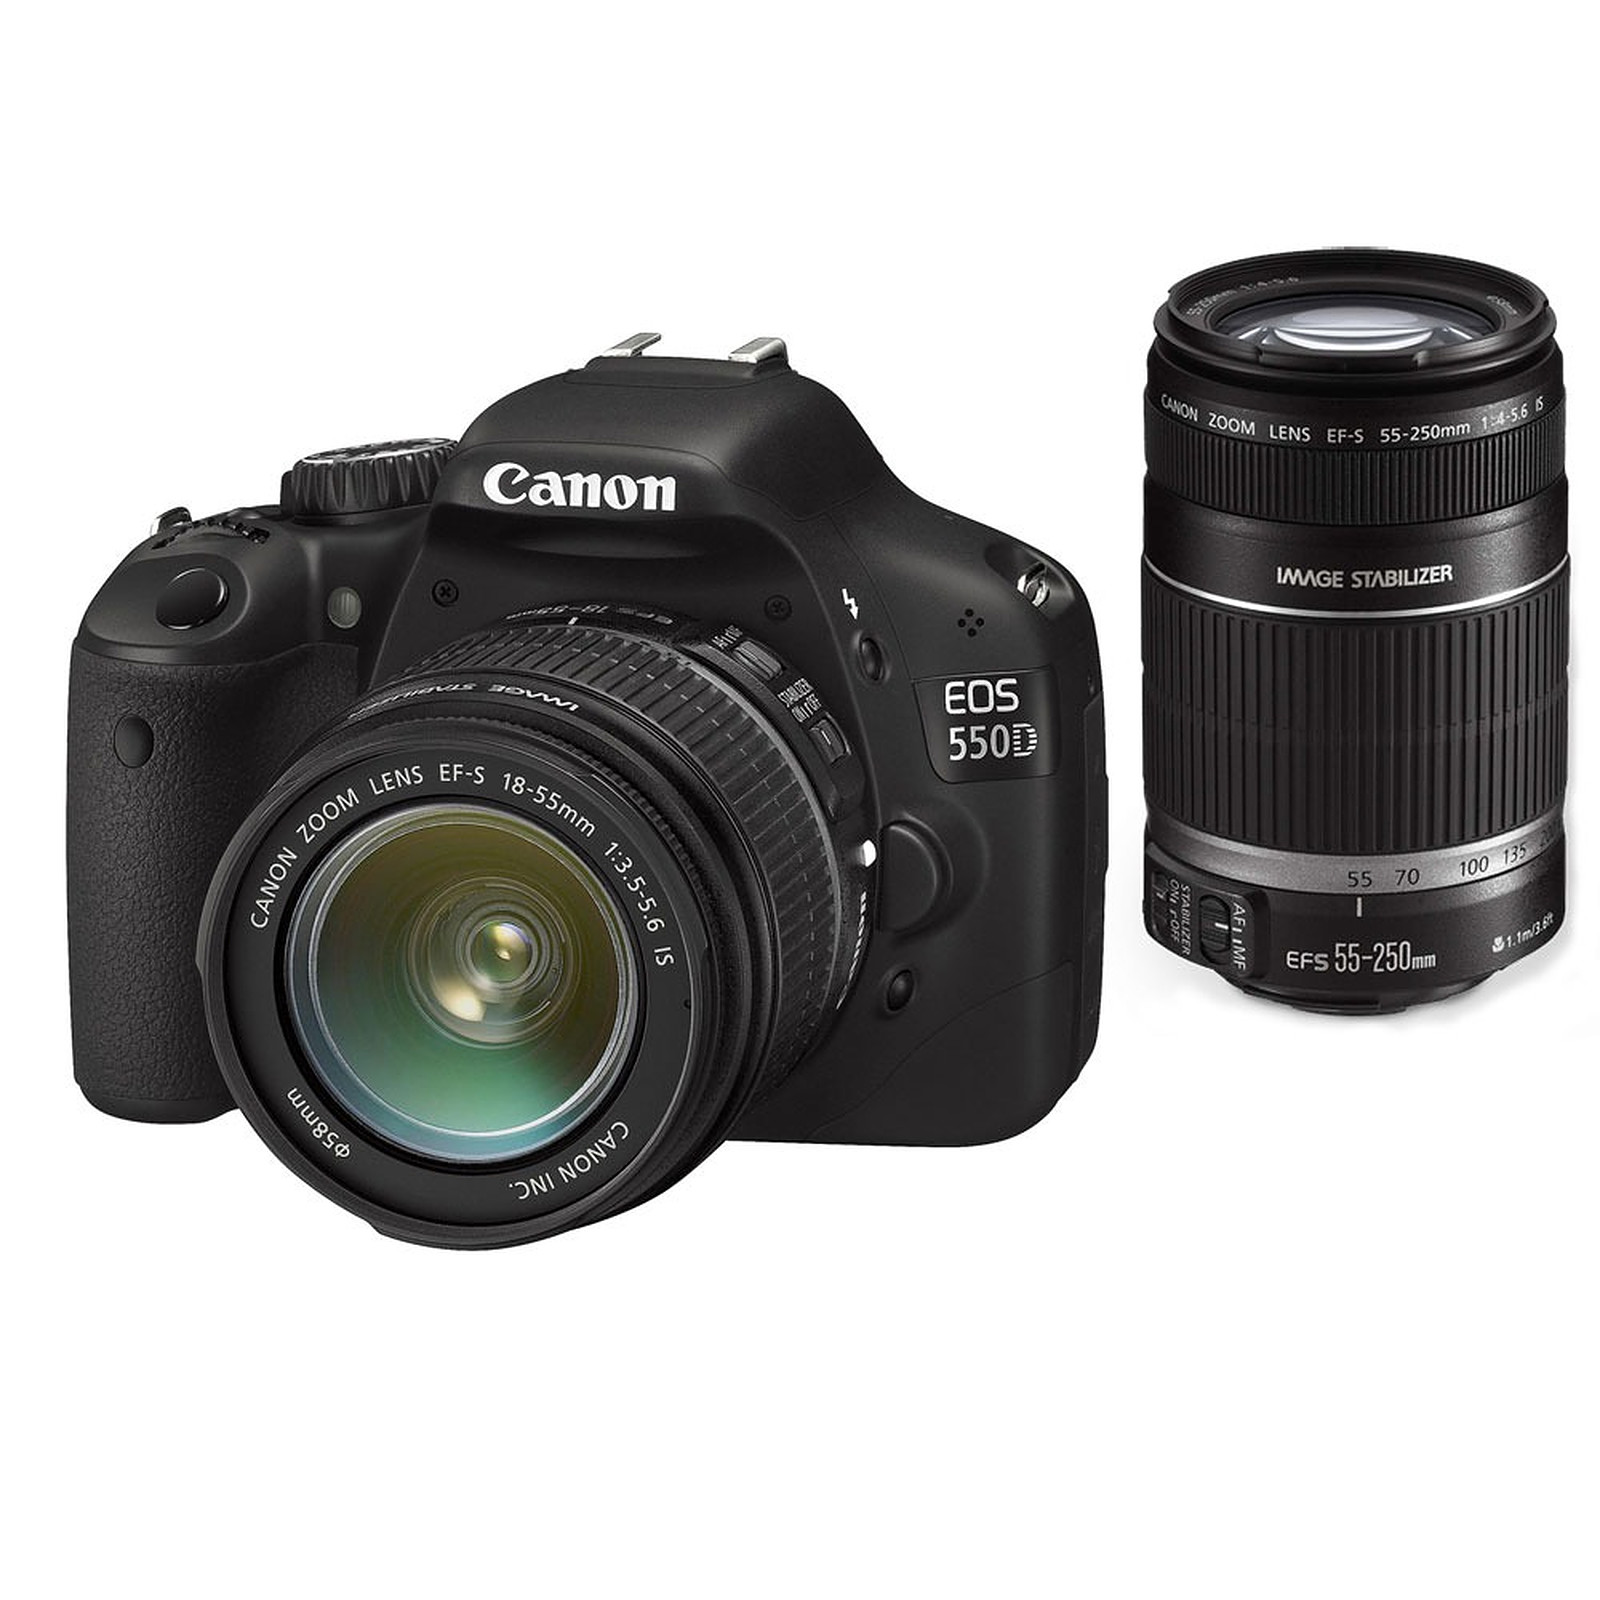 Canon EOS 550D + Objectifs 18-55mm + 55-250 mm